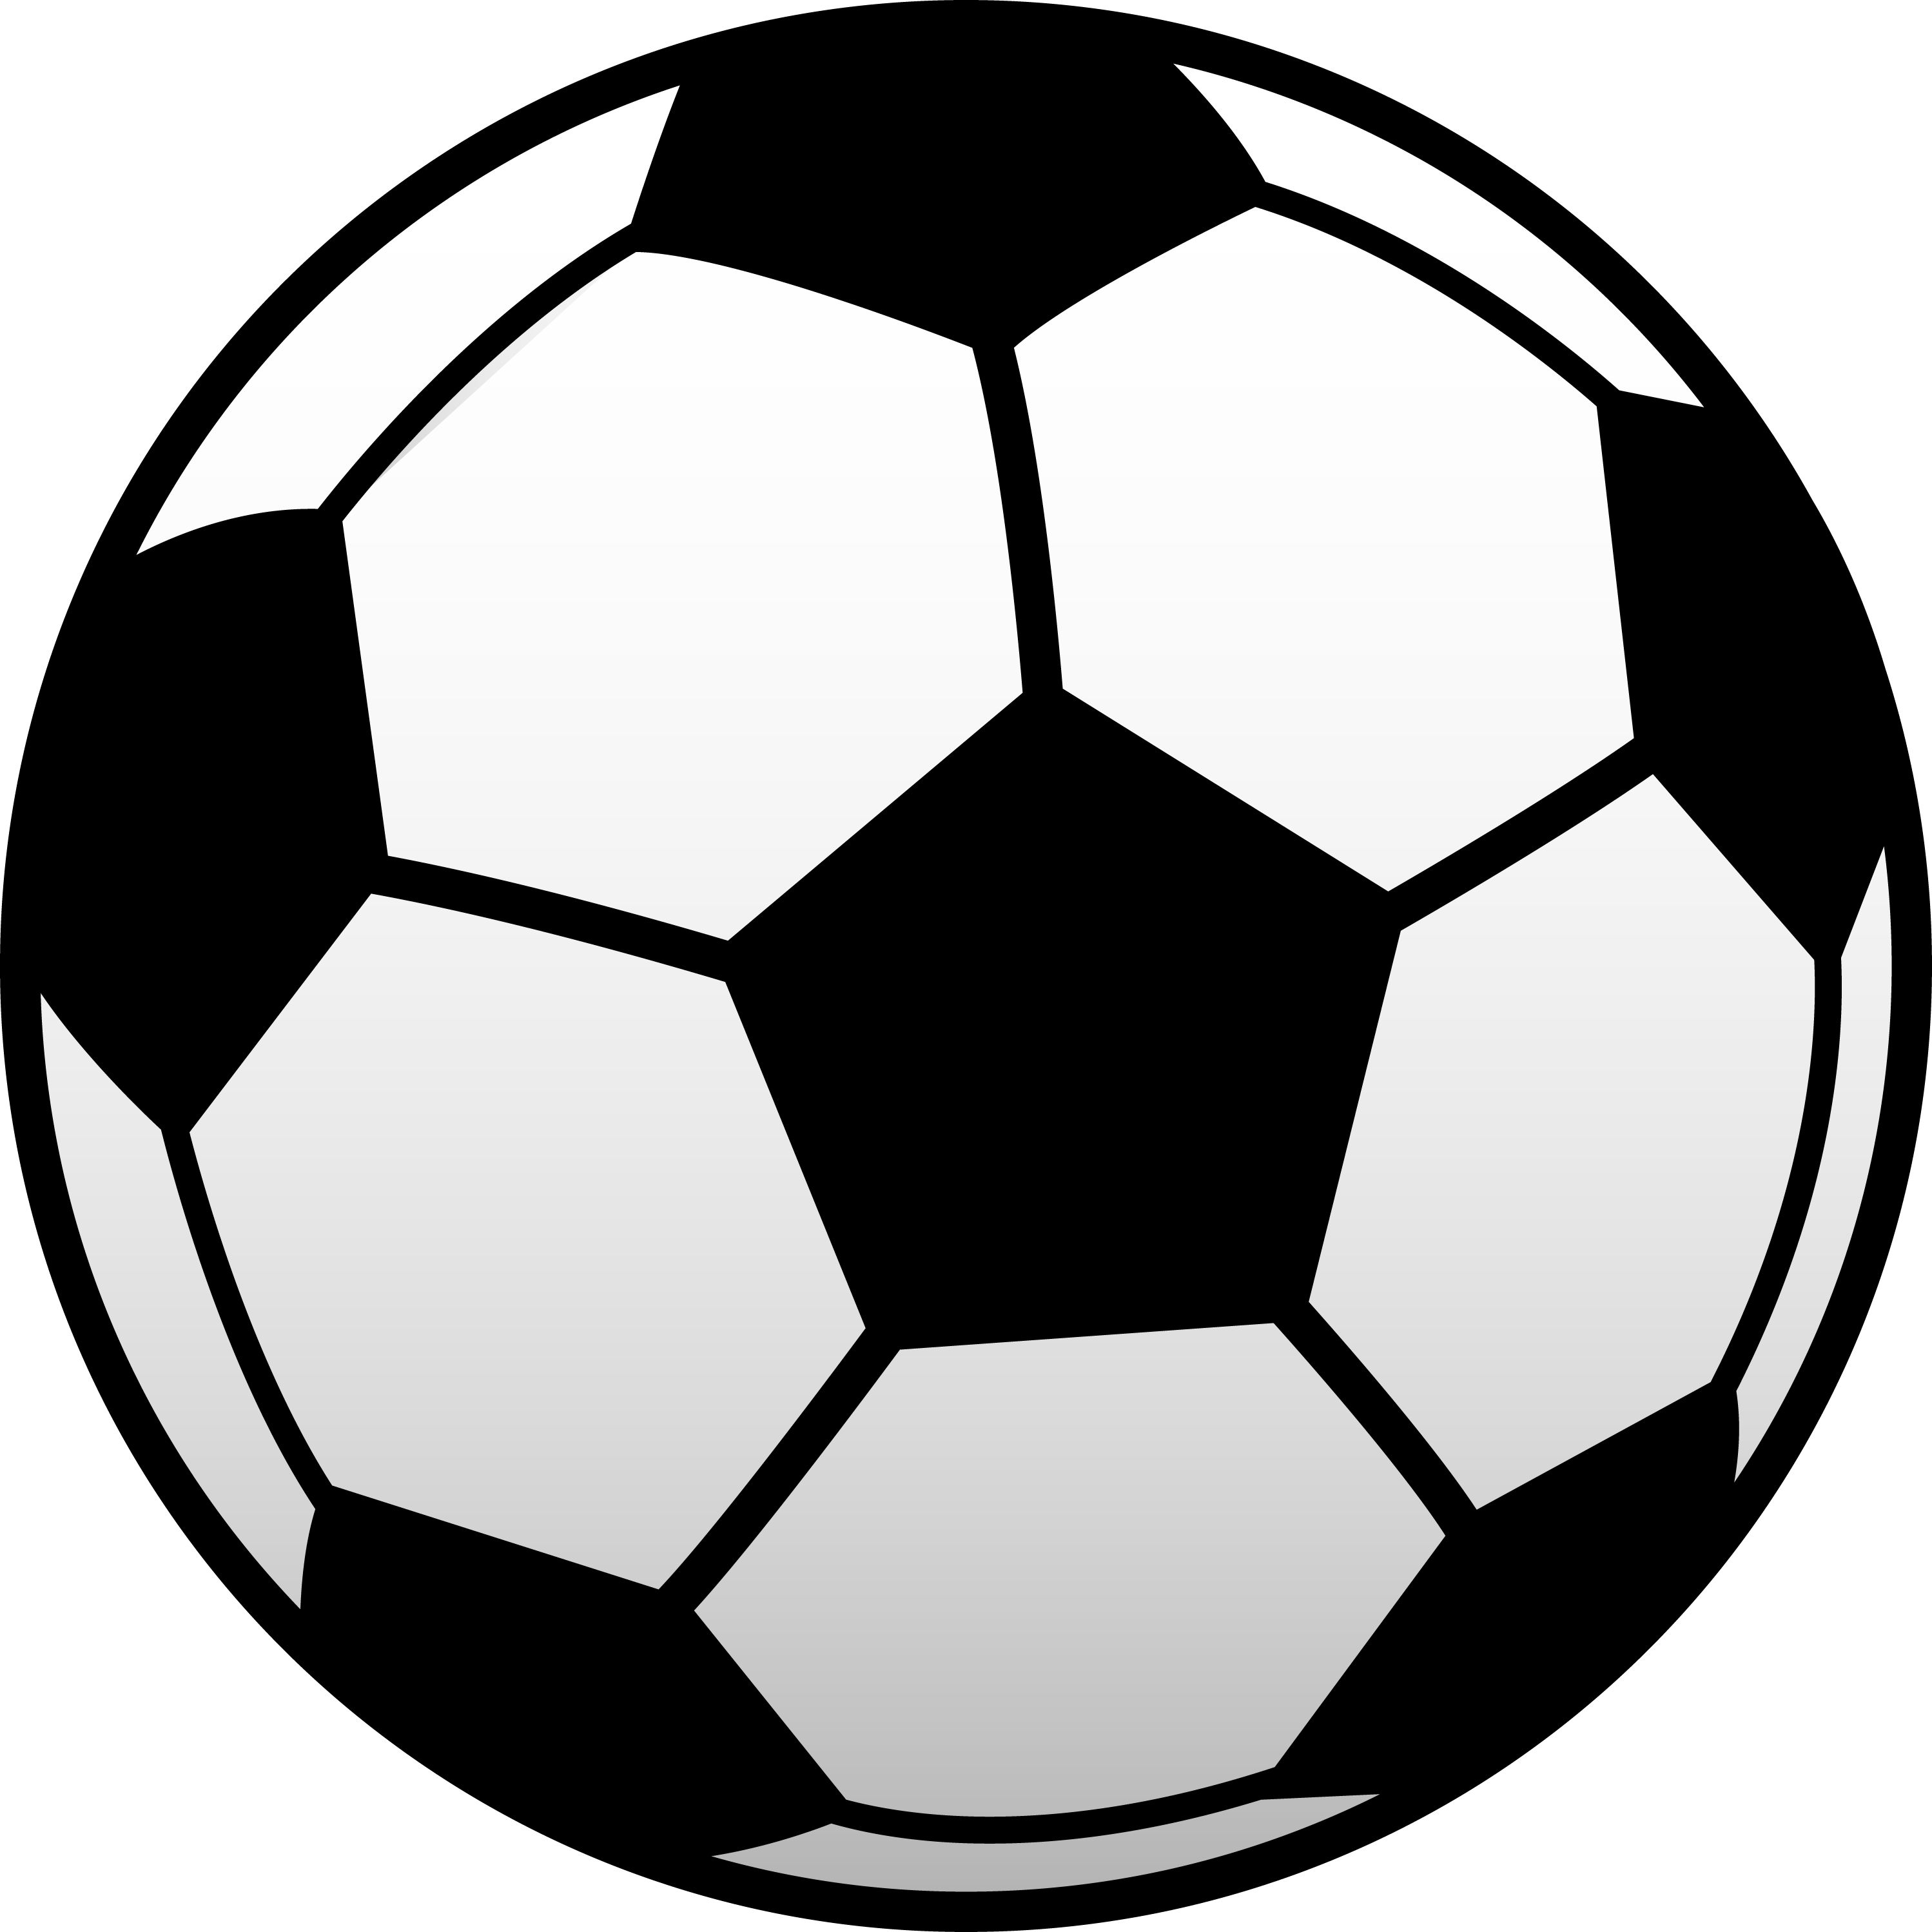 Soccer Ball Clipart | Clipart Panda - Free Clipart Images: www.clipartpanda.com/categories/soccer-ball-clipart